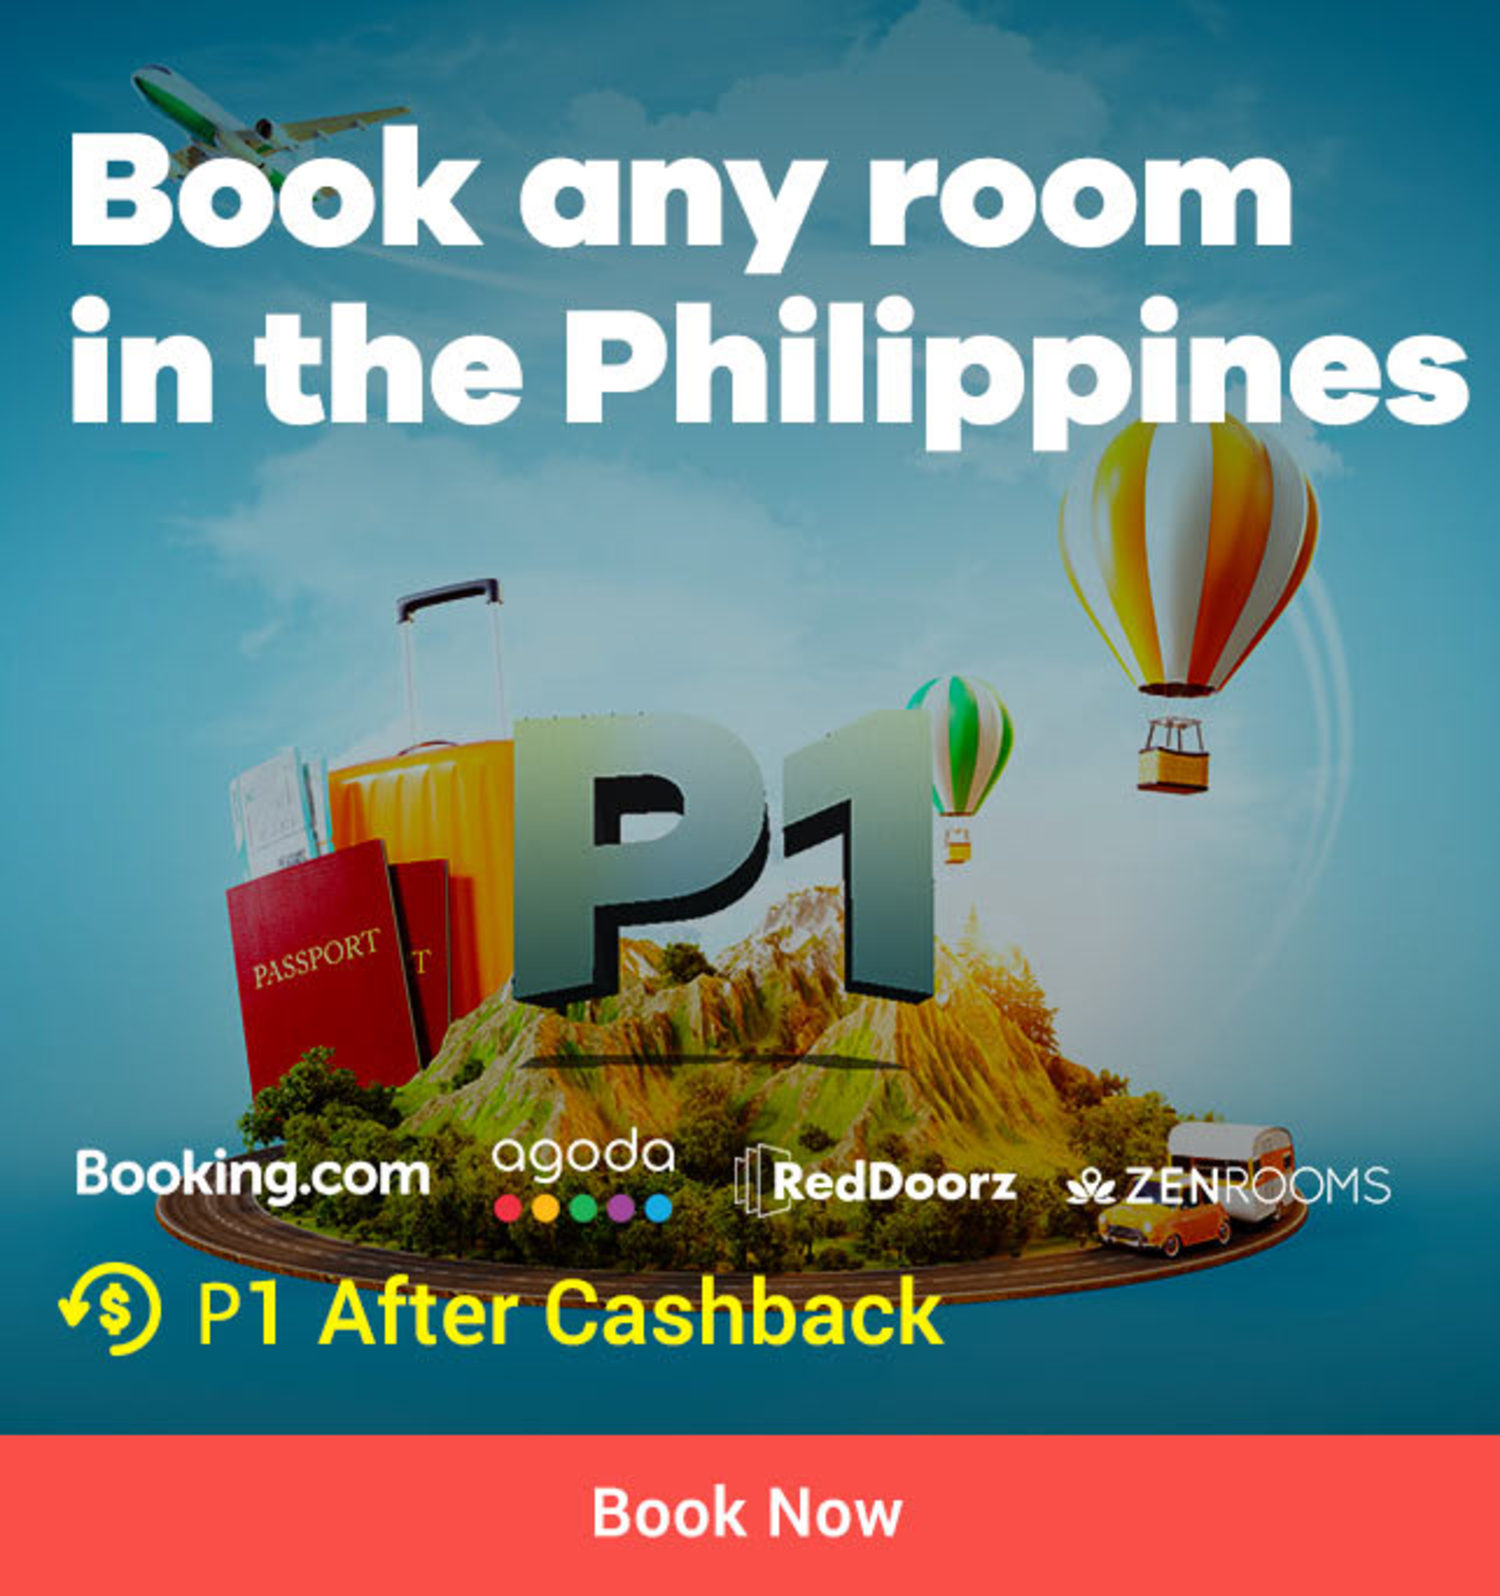 Book any room in the Philippines for P1